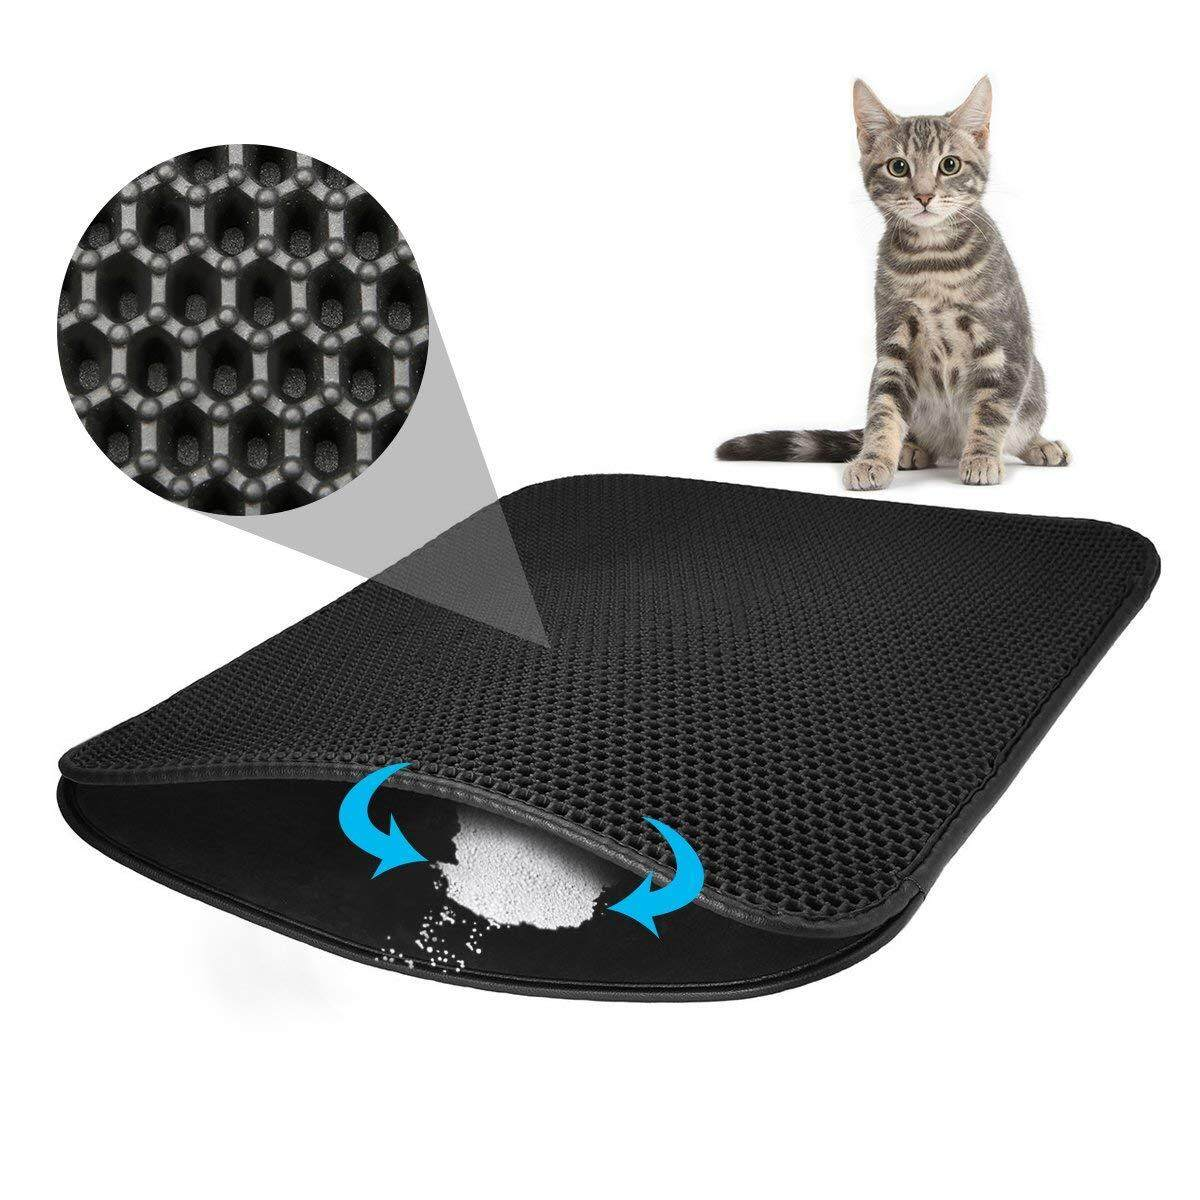 Dustbin Pad, Cat Litter Mat 75x 55cm Trash Can Pad Honeycomb Design Trash Can Carpet Waterproof Double Layer Design Honeycomb Cat Litter Mat Black By Ralleya.